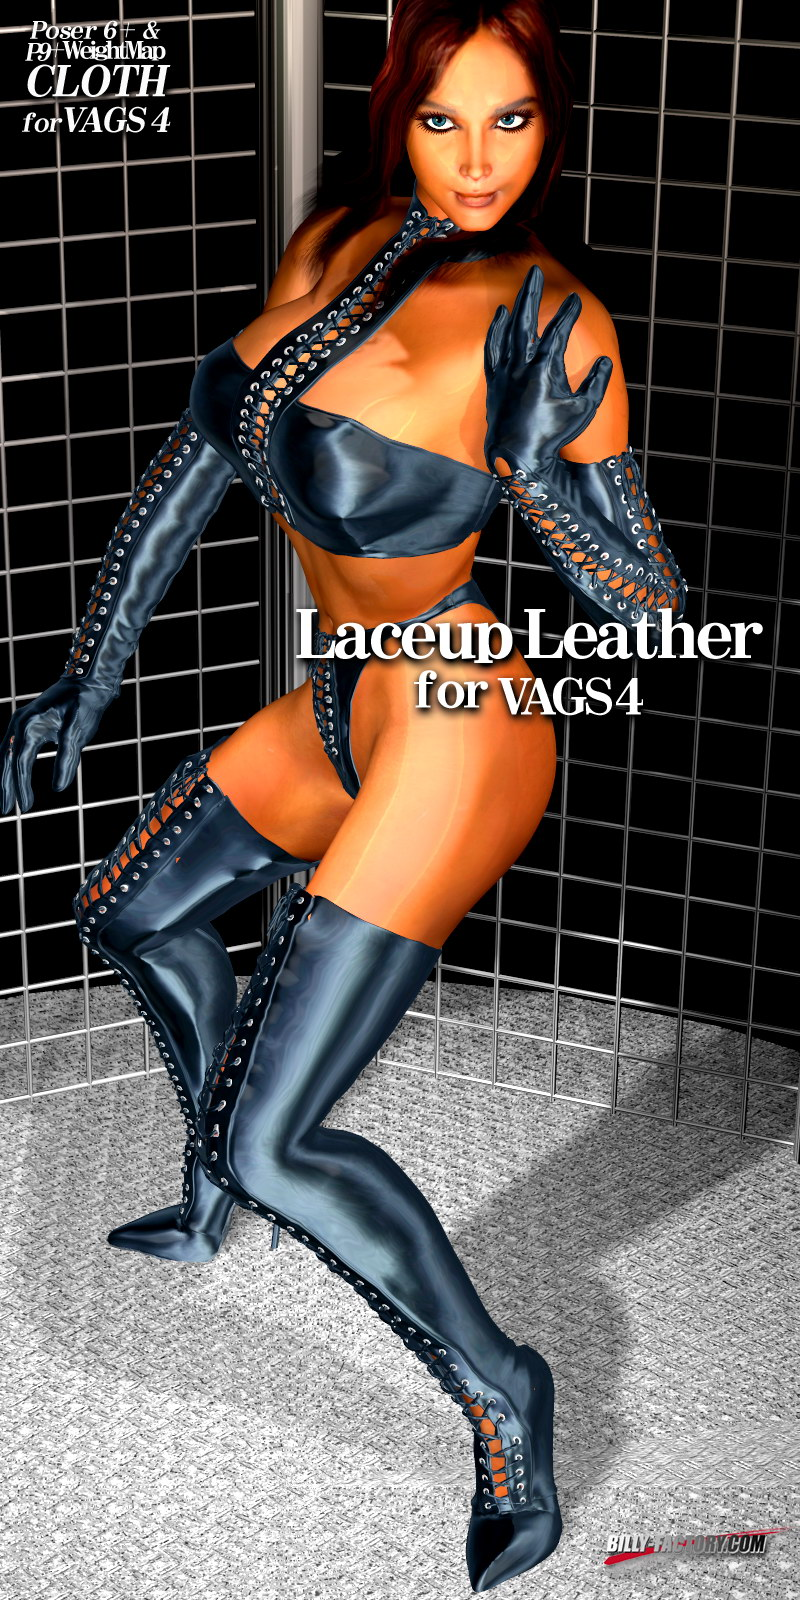 V4 Laceup Leather